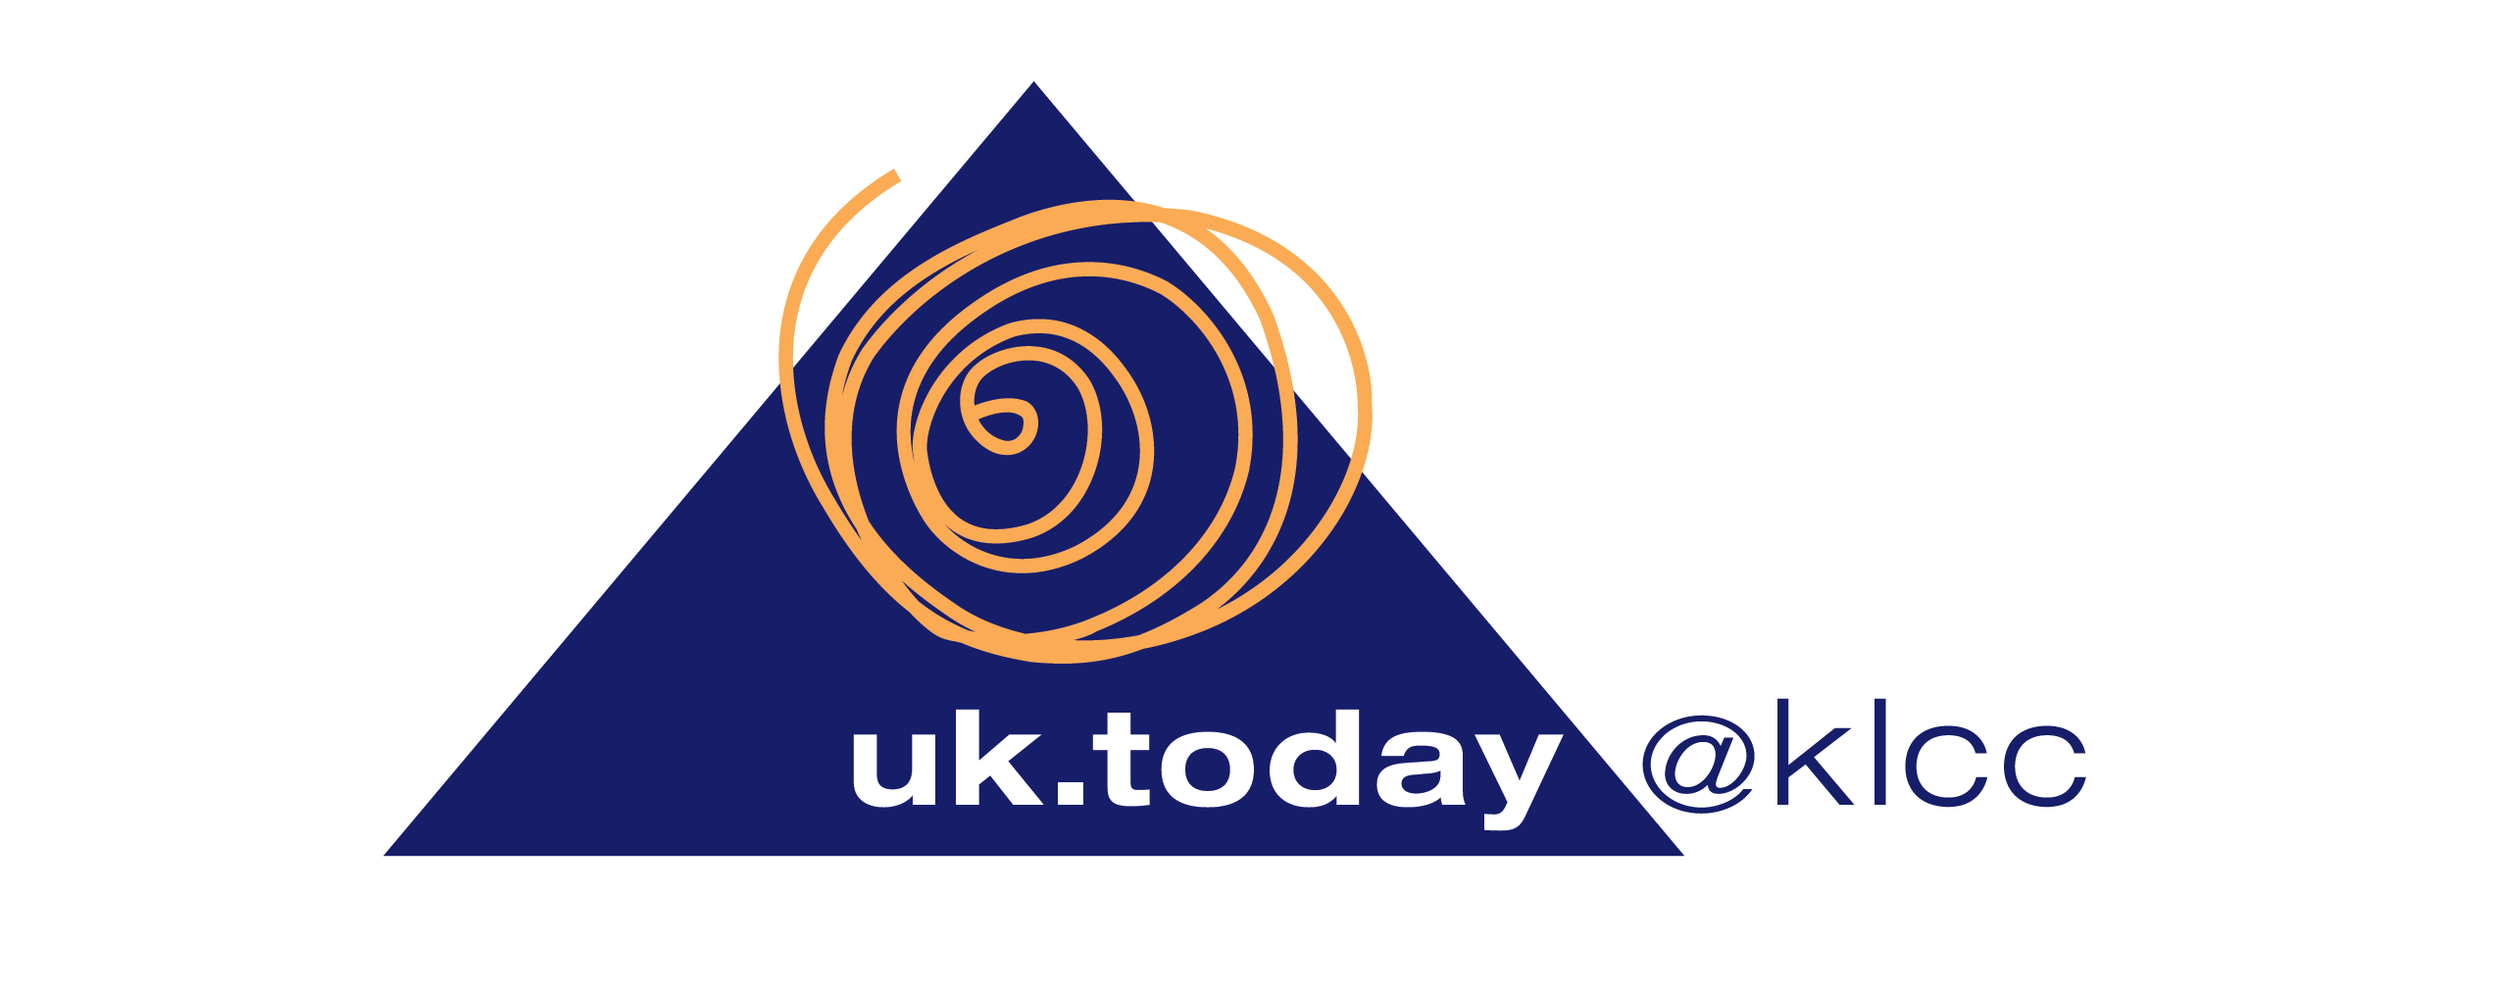 The logo was based on the pyramid structure and the circular forms of the exhibition layout.